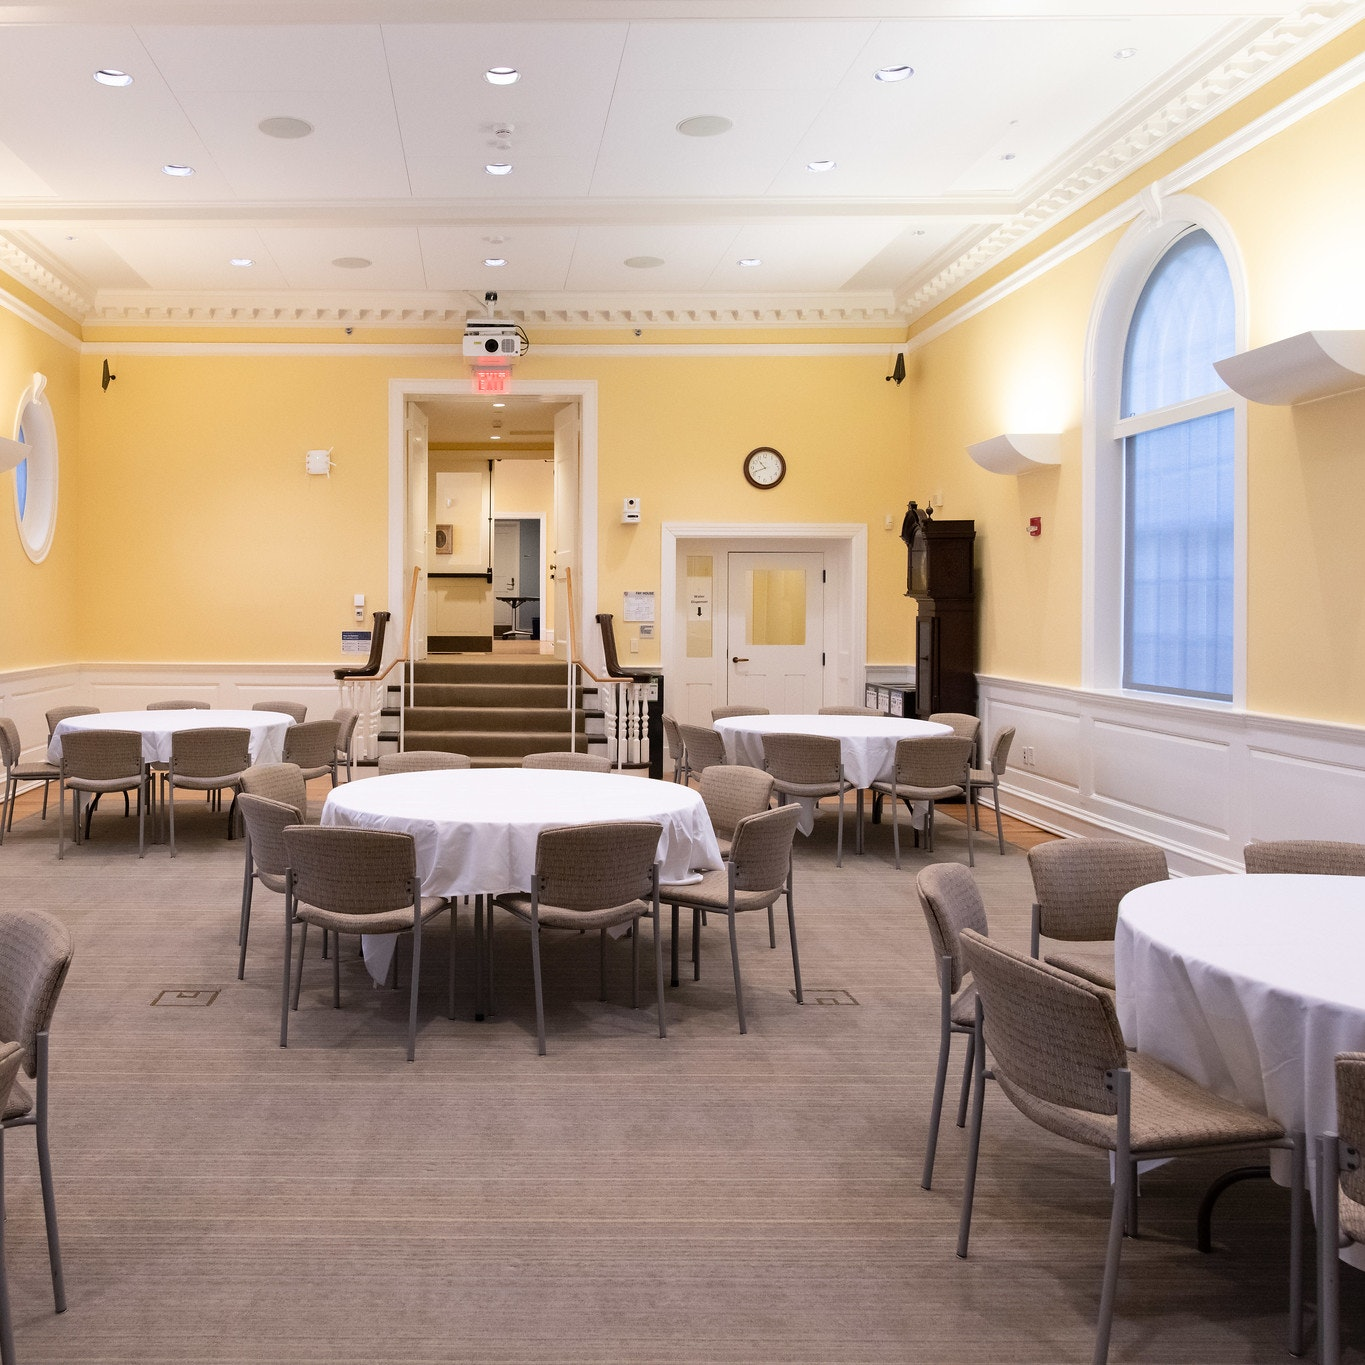 Banquet hall with five circular tables dressed in white table-cloth. Each table seats 8 people. View is from the front of the room, with the entrance in the back of the room. Walls are yellow.